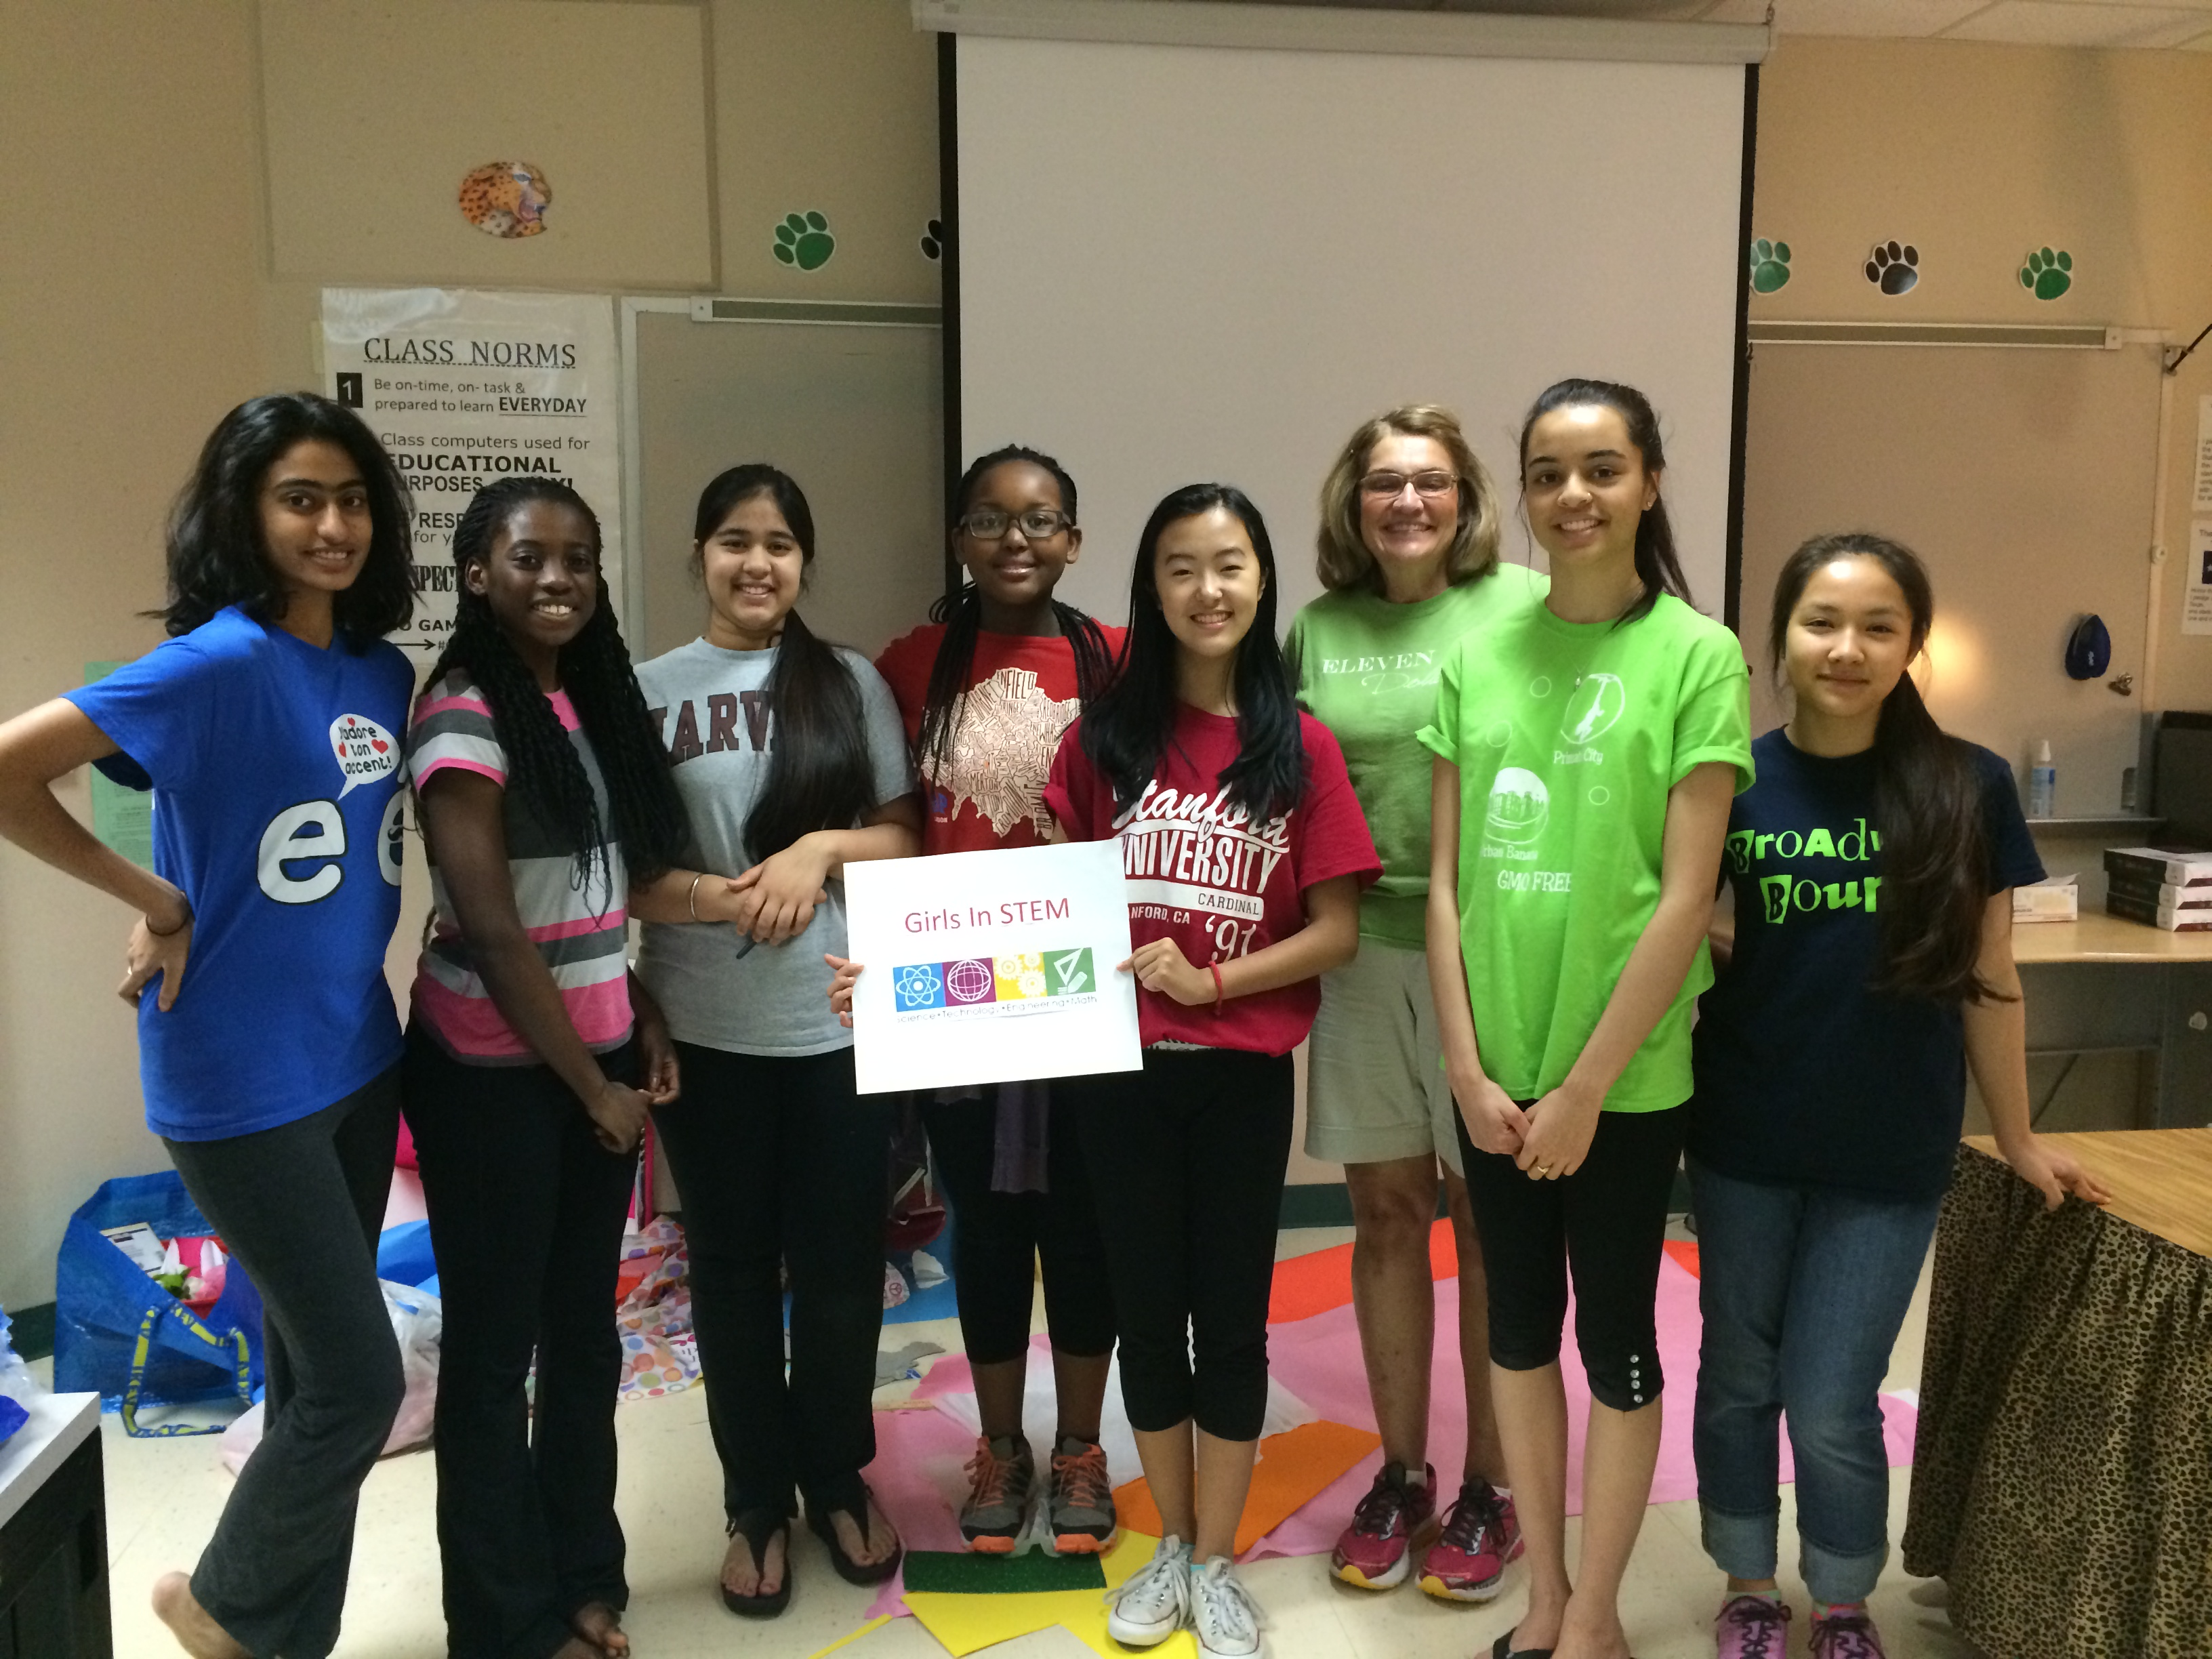 Girls in STEM founding team 2015 picture